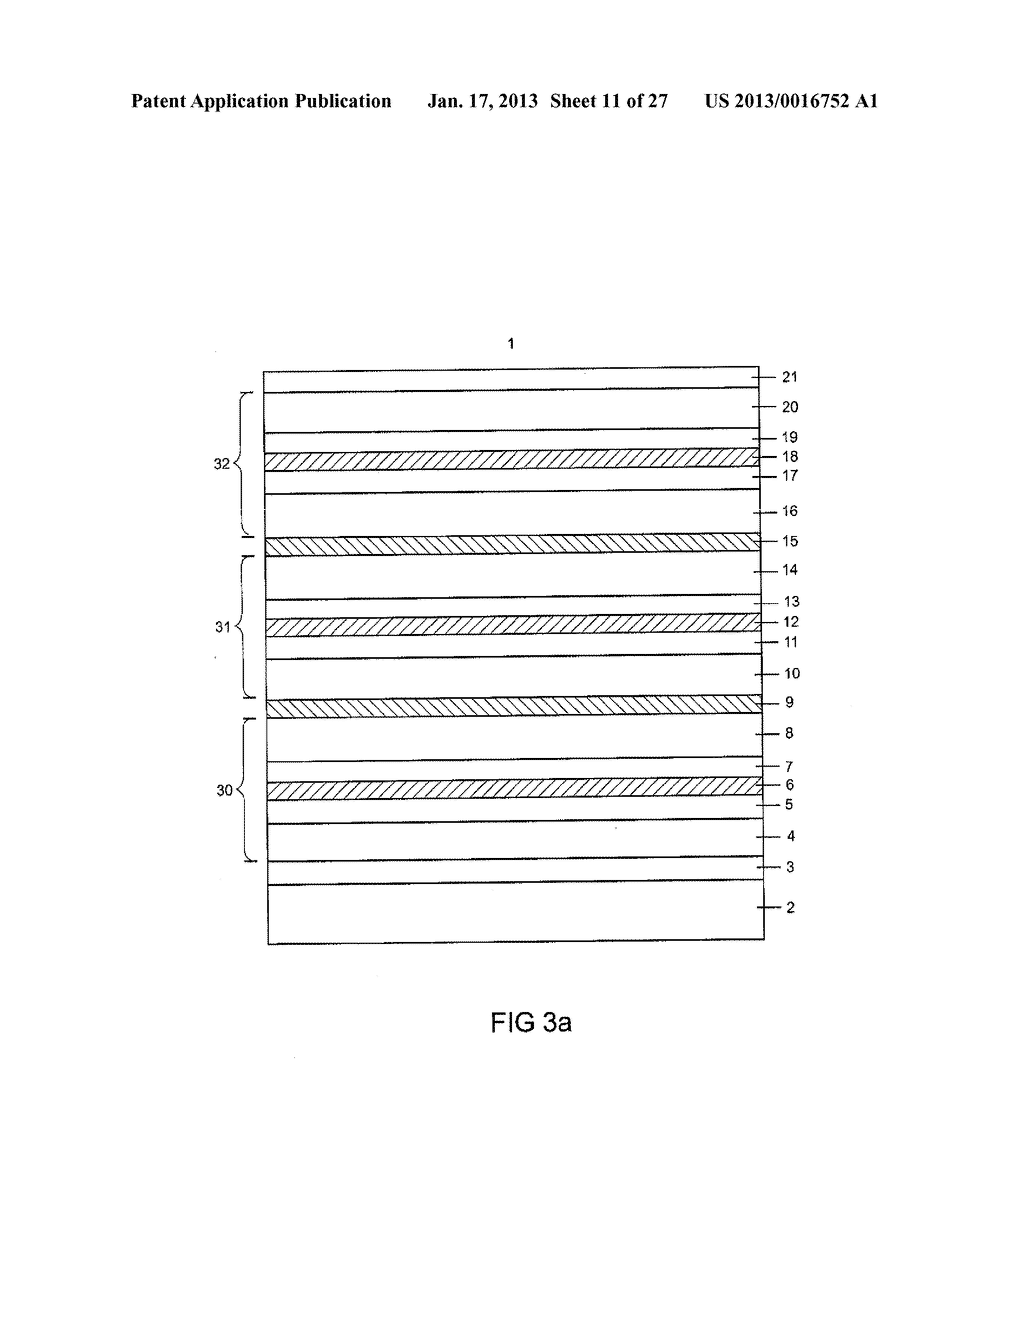 Laser Diode Assembly and Method for Producing a Laser Diode AssemblyAANM Lell; AlfredAACI Maxhutte-HaidhofAACO DEAAGP Lell; Alfred Maxhutte-Haidhof DEAANM Straussburg; MartinAACI DonaustaufAACO DEAAGP Straussburg; Martin Donaustauf DE - diagram, schematic, and image 12